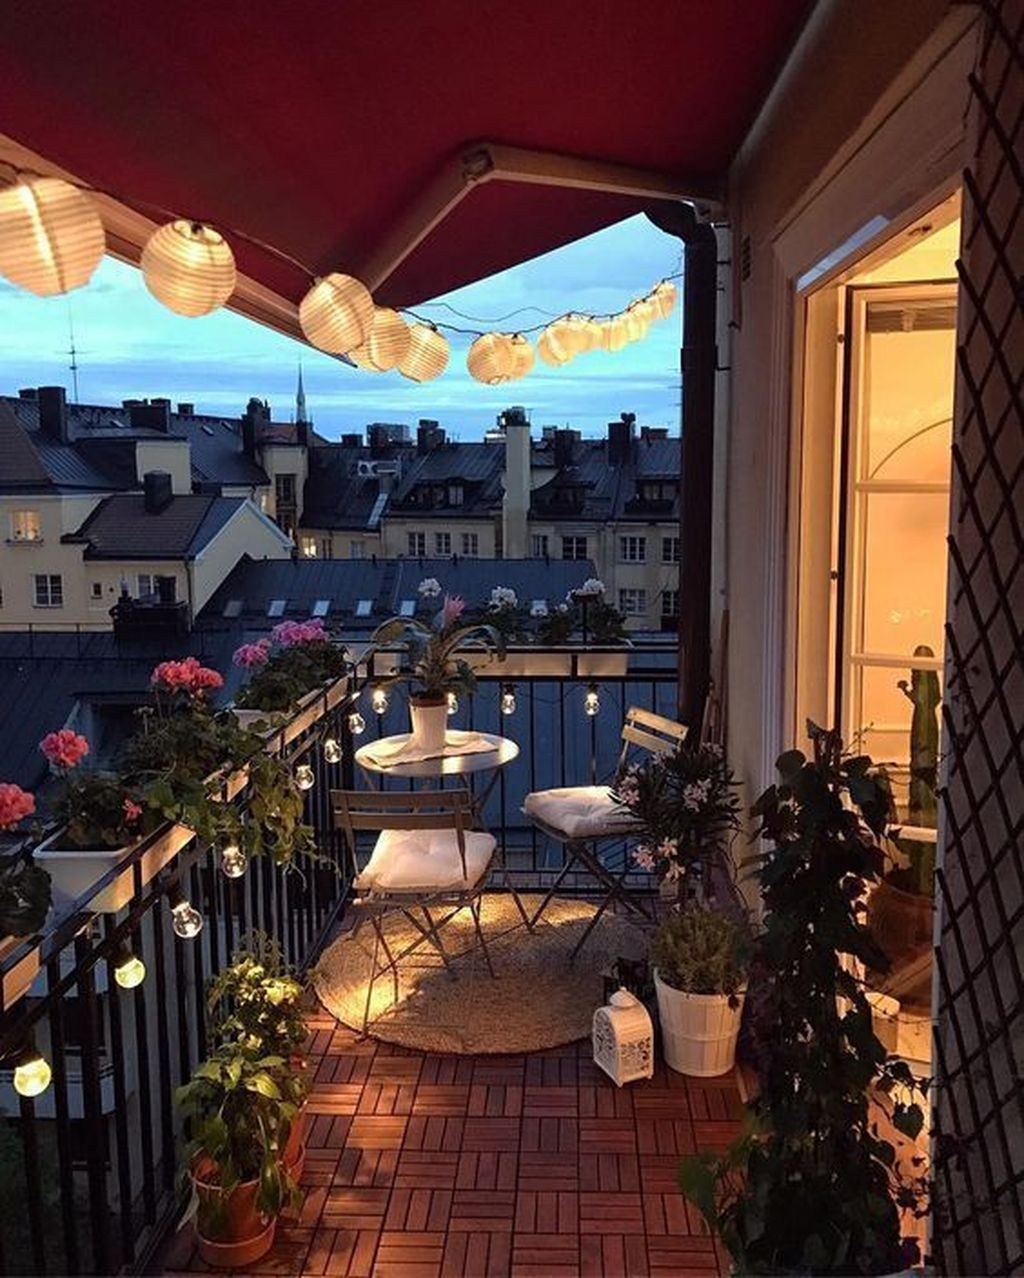 Decoration Of Balconies In Apartments That Inspire People40